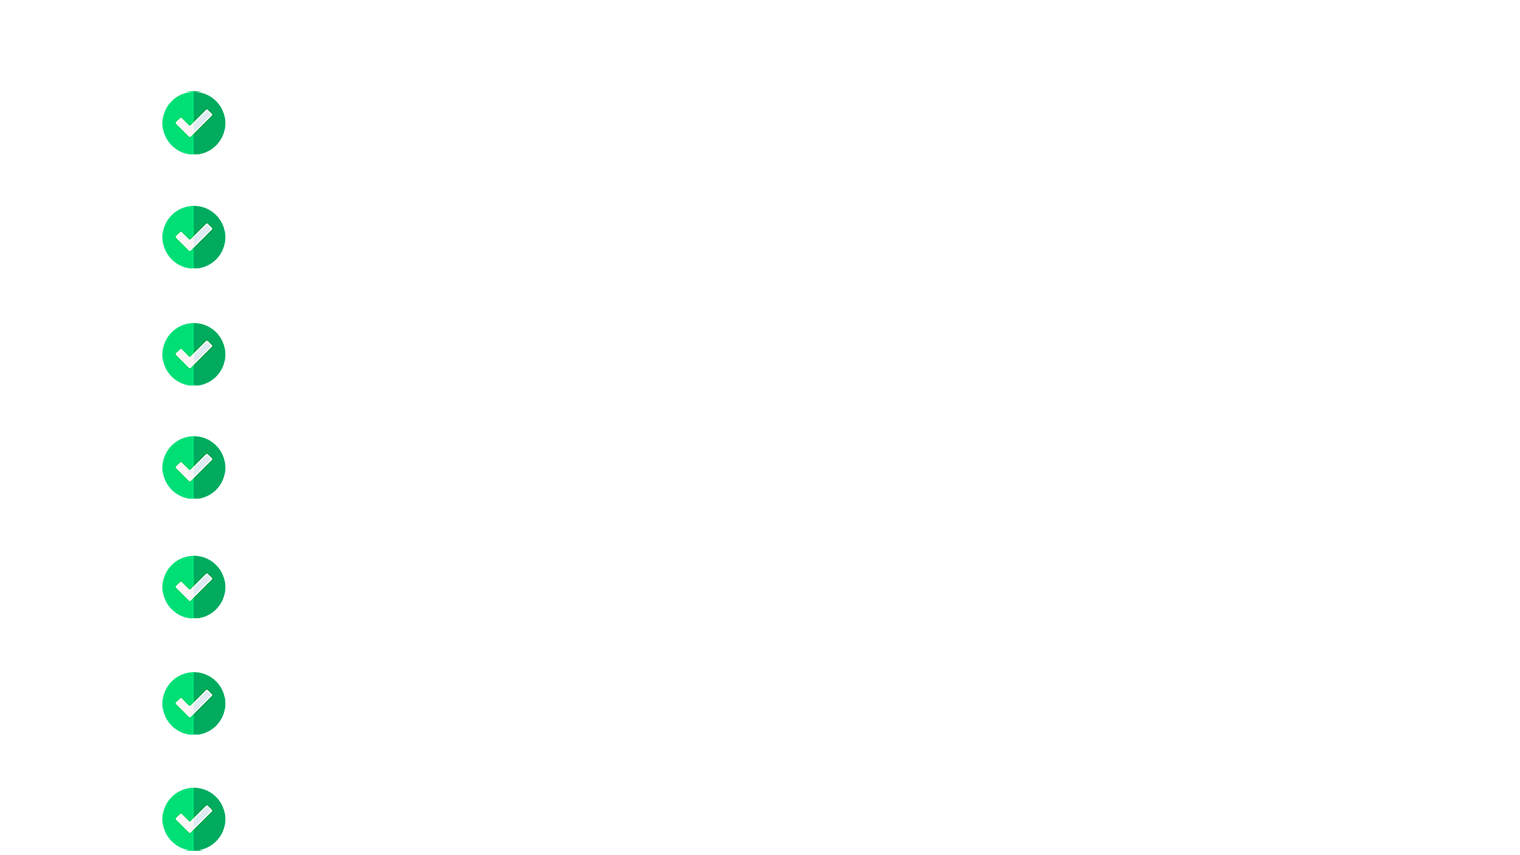 Advertise Your Business On Connected TV